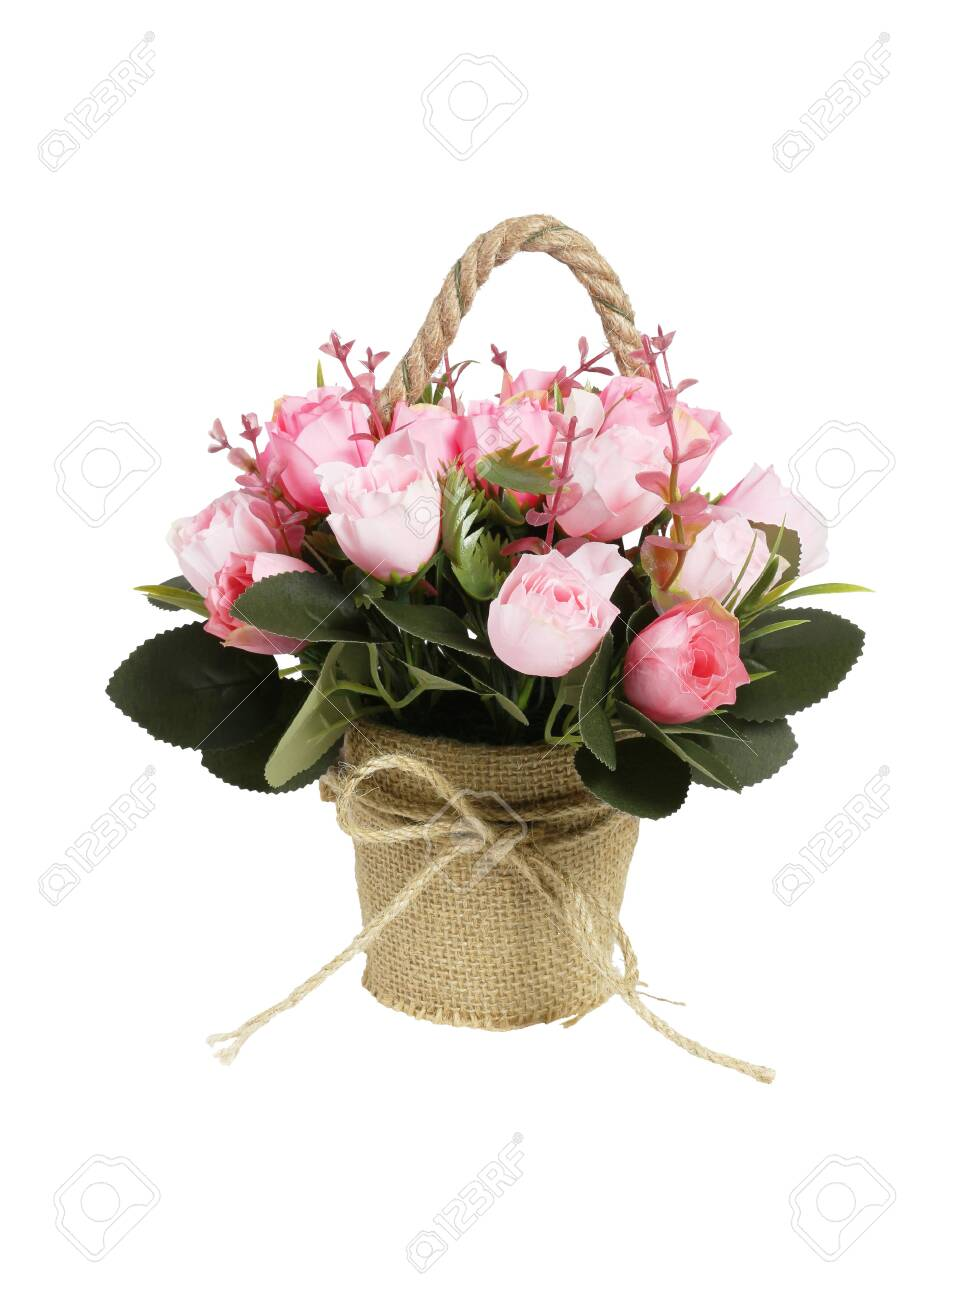 Decorative Potted Plastic Flowers on White Background - 150777679